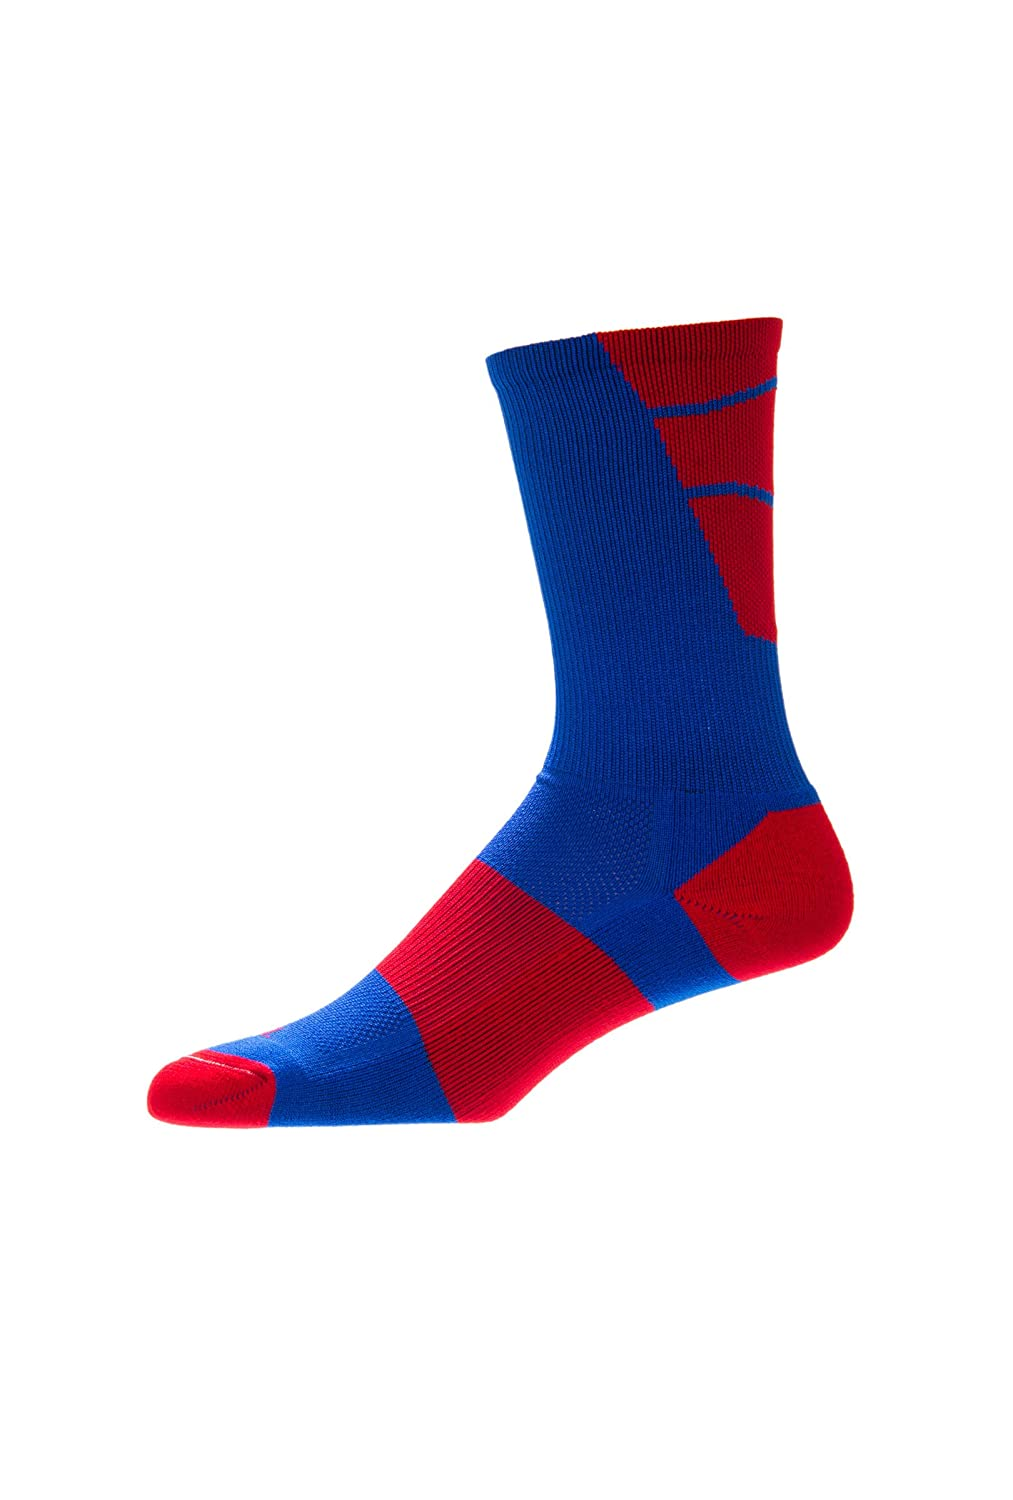 CSI Point Guard Performance Crew Socks Made In The USA Royal/Red 6MAN6015